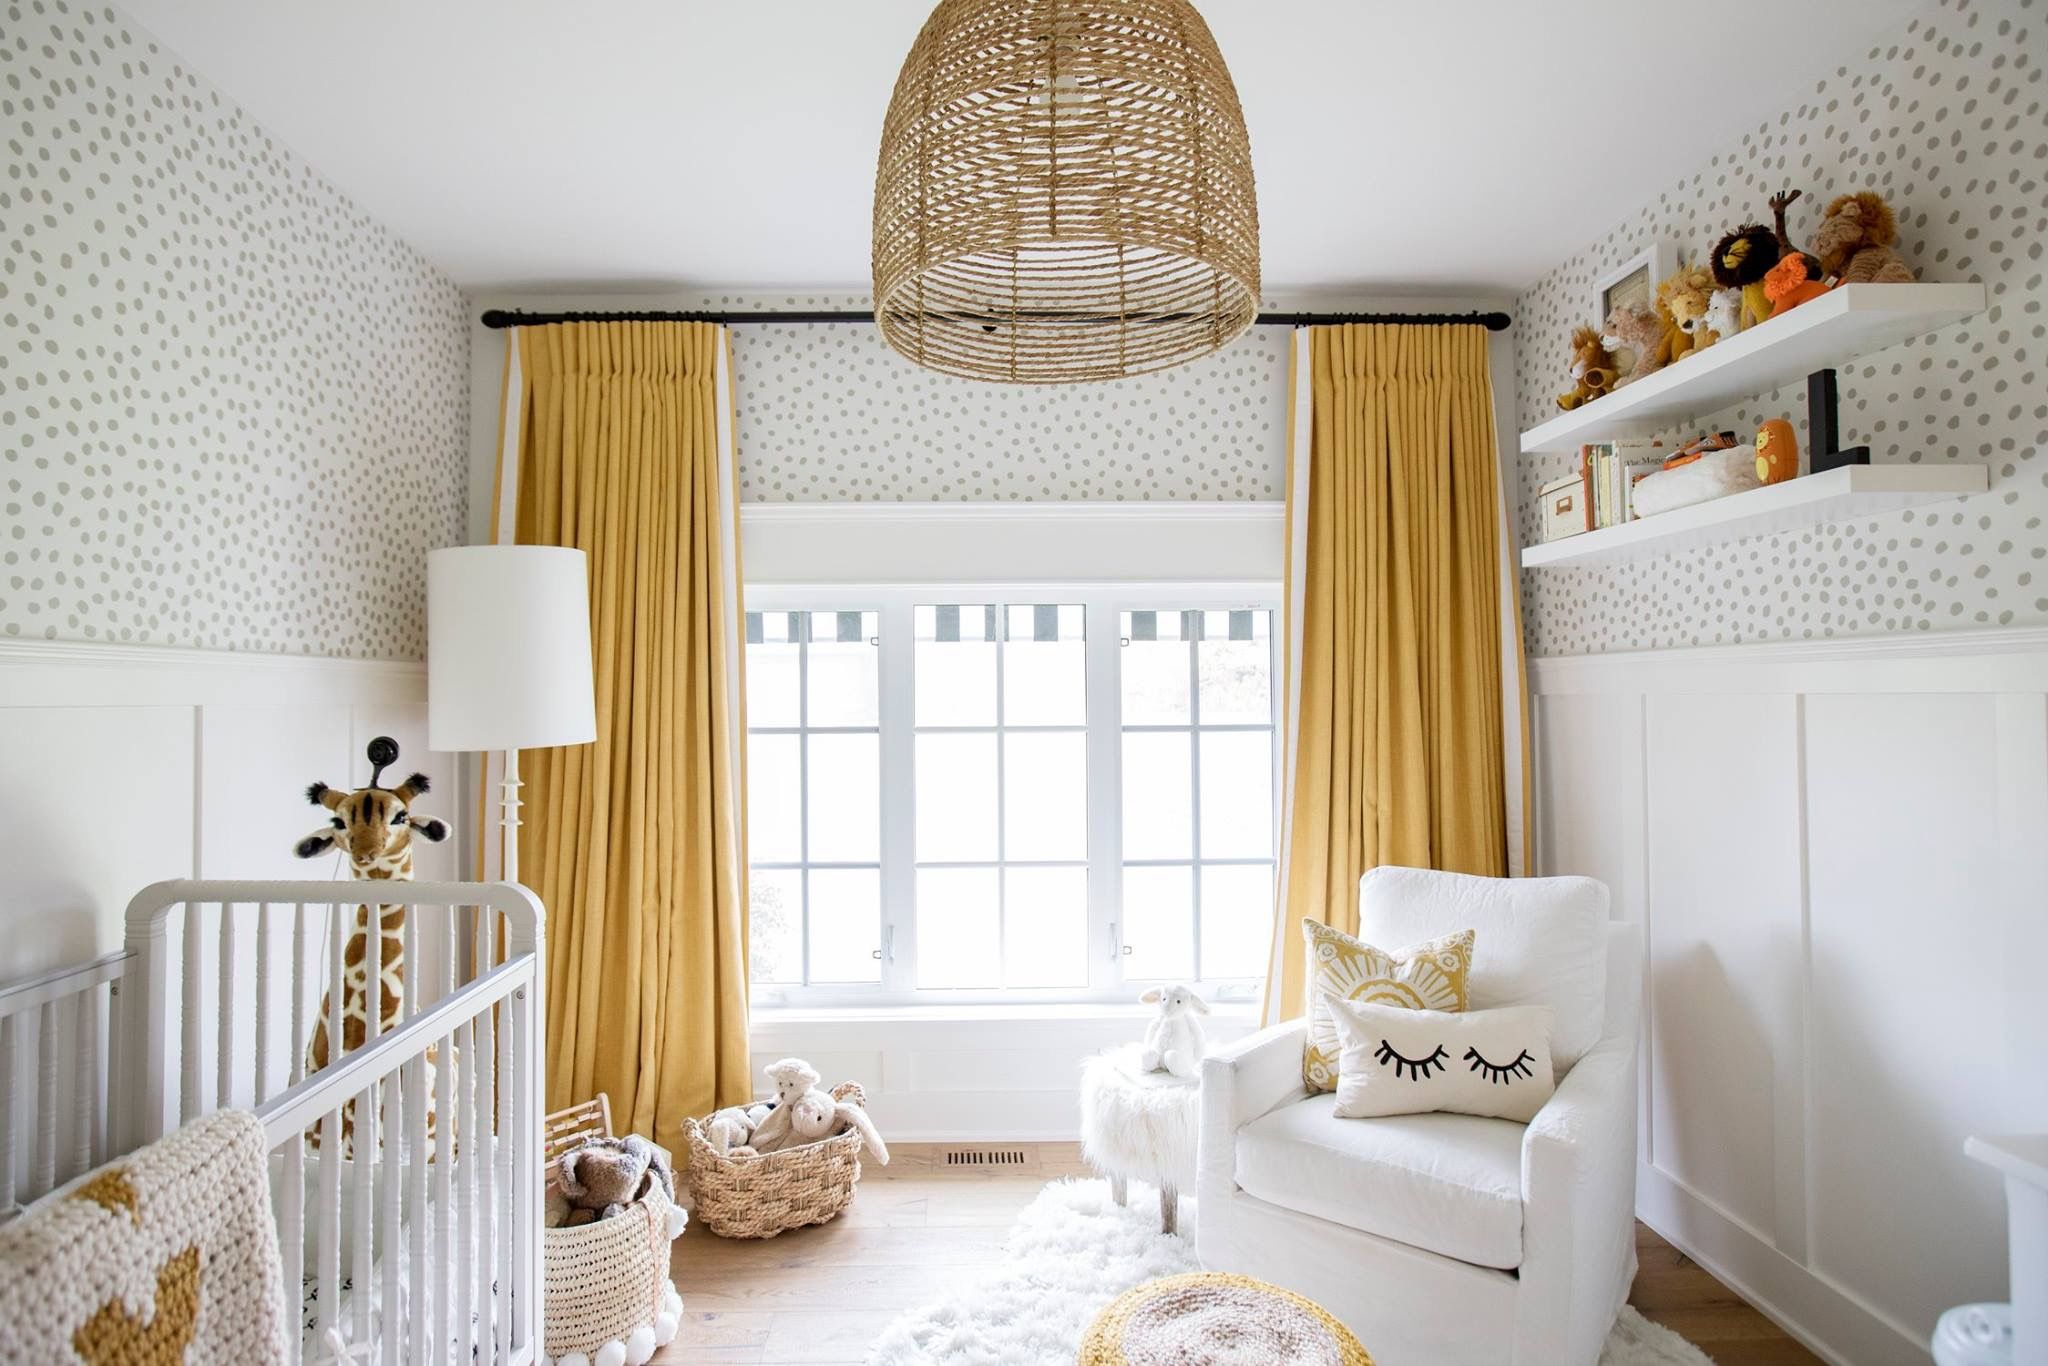 Pin by Jess Oakes on Interior Design for Kids Nursery